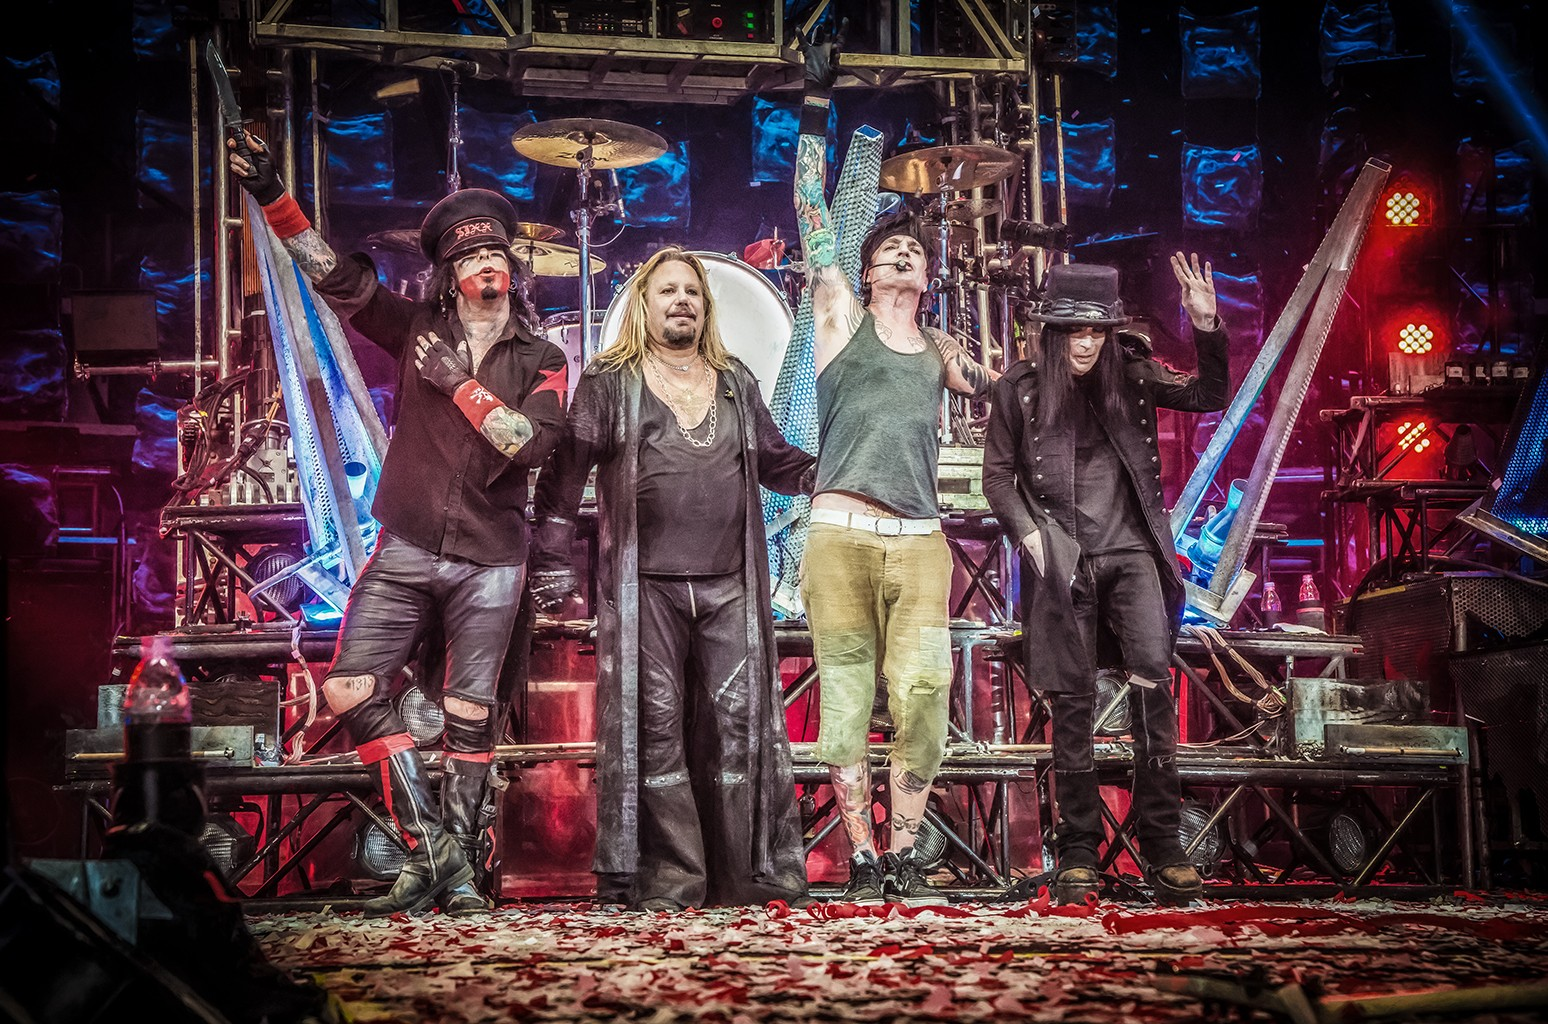 Mötley Crüe photographed in 2015